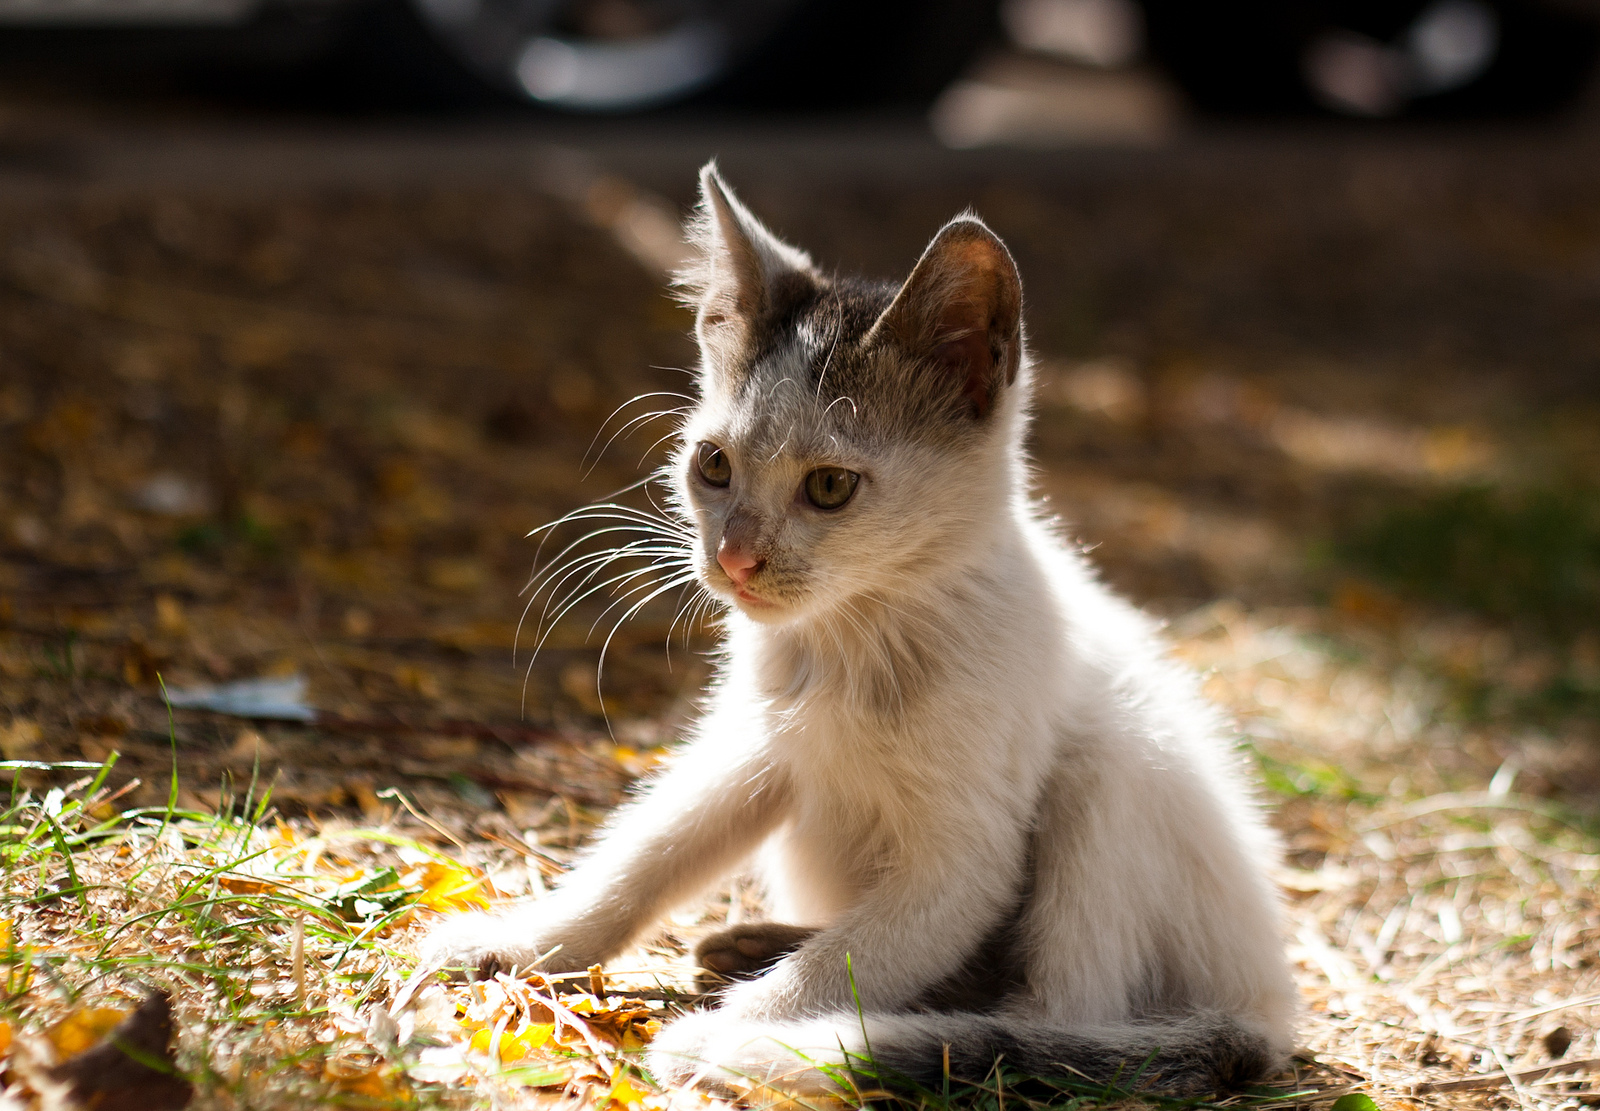 6 Things You Can Do To Save Kittens' Lives